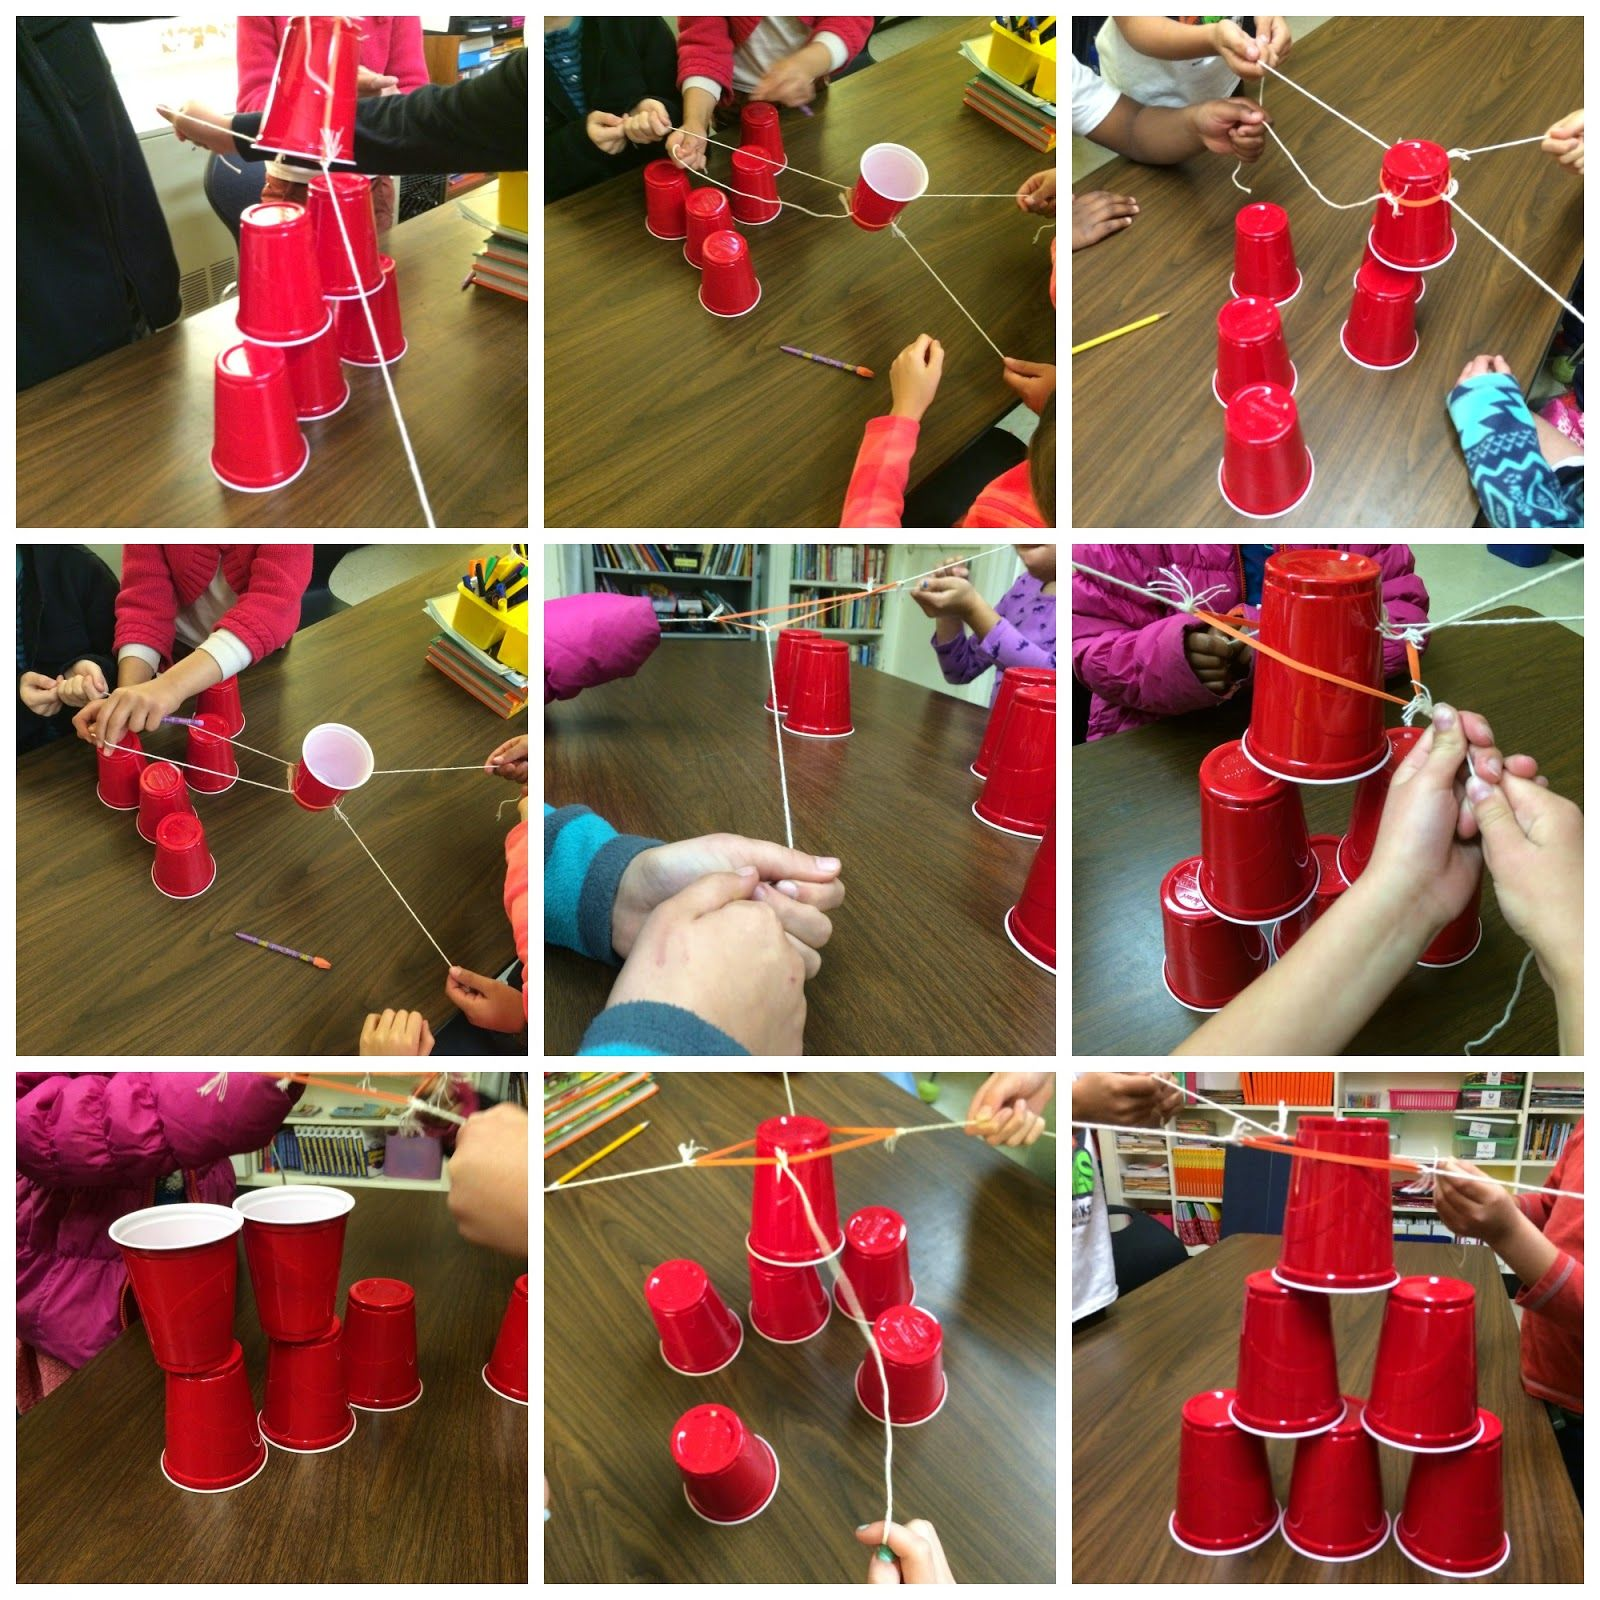 Team Building Cup Stacking With Rubberband And String